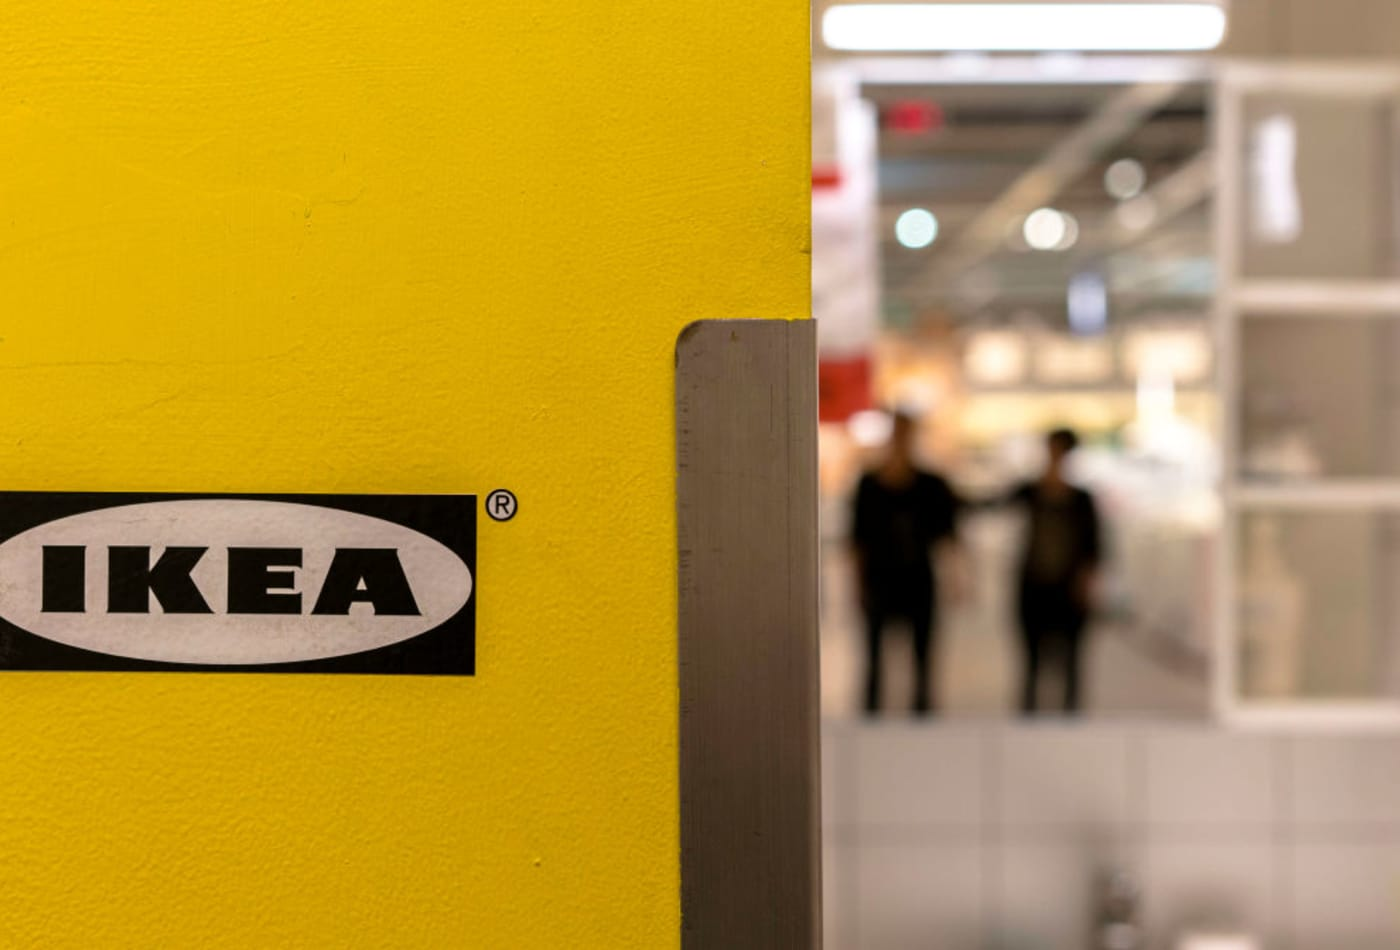 Ikea Just Made Some Pointless Youtube Ads That Run For Ages